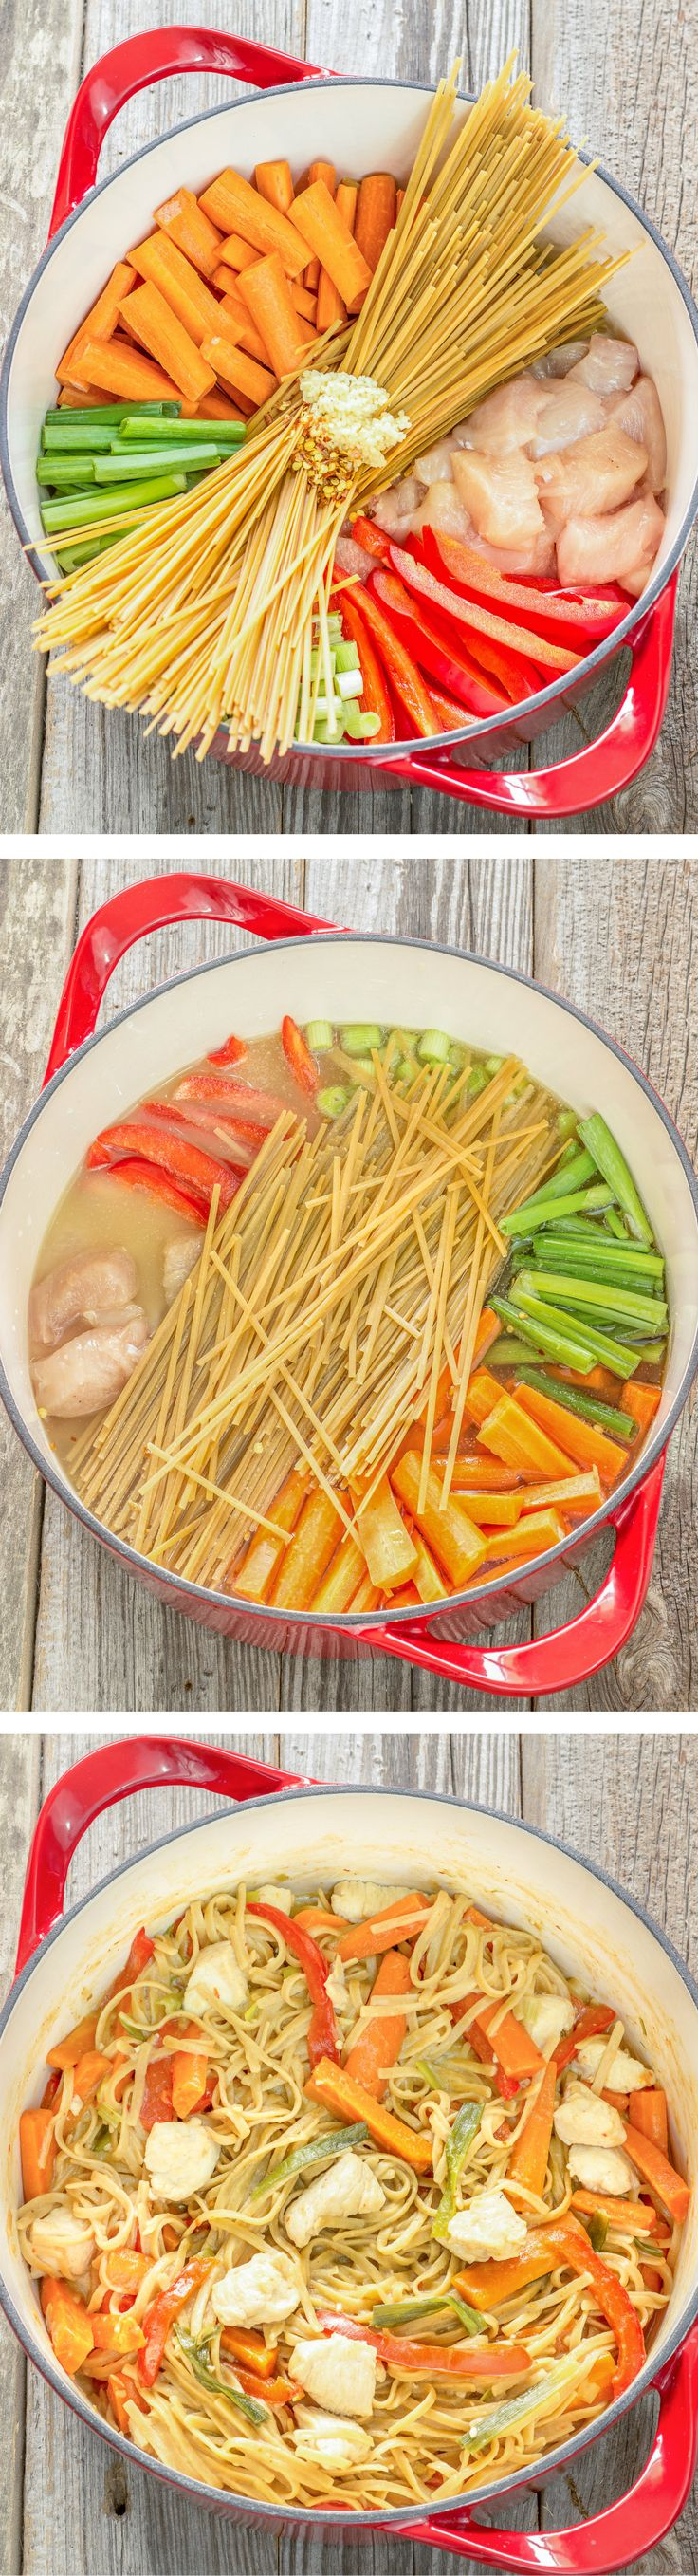 One Pot Wonder Chicken Lo Mein is simple. Just put uncooked pasta, chicken, veggies, broth, and seasoning into a pot, simmer, and it creates a yummy sauce. Pinned over 684k times.